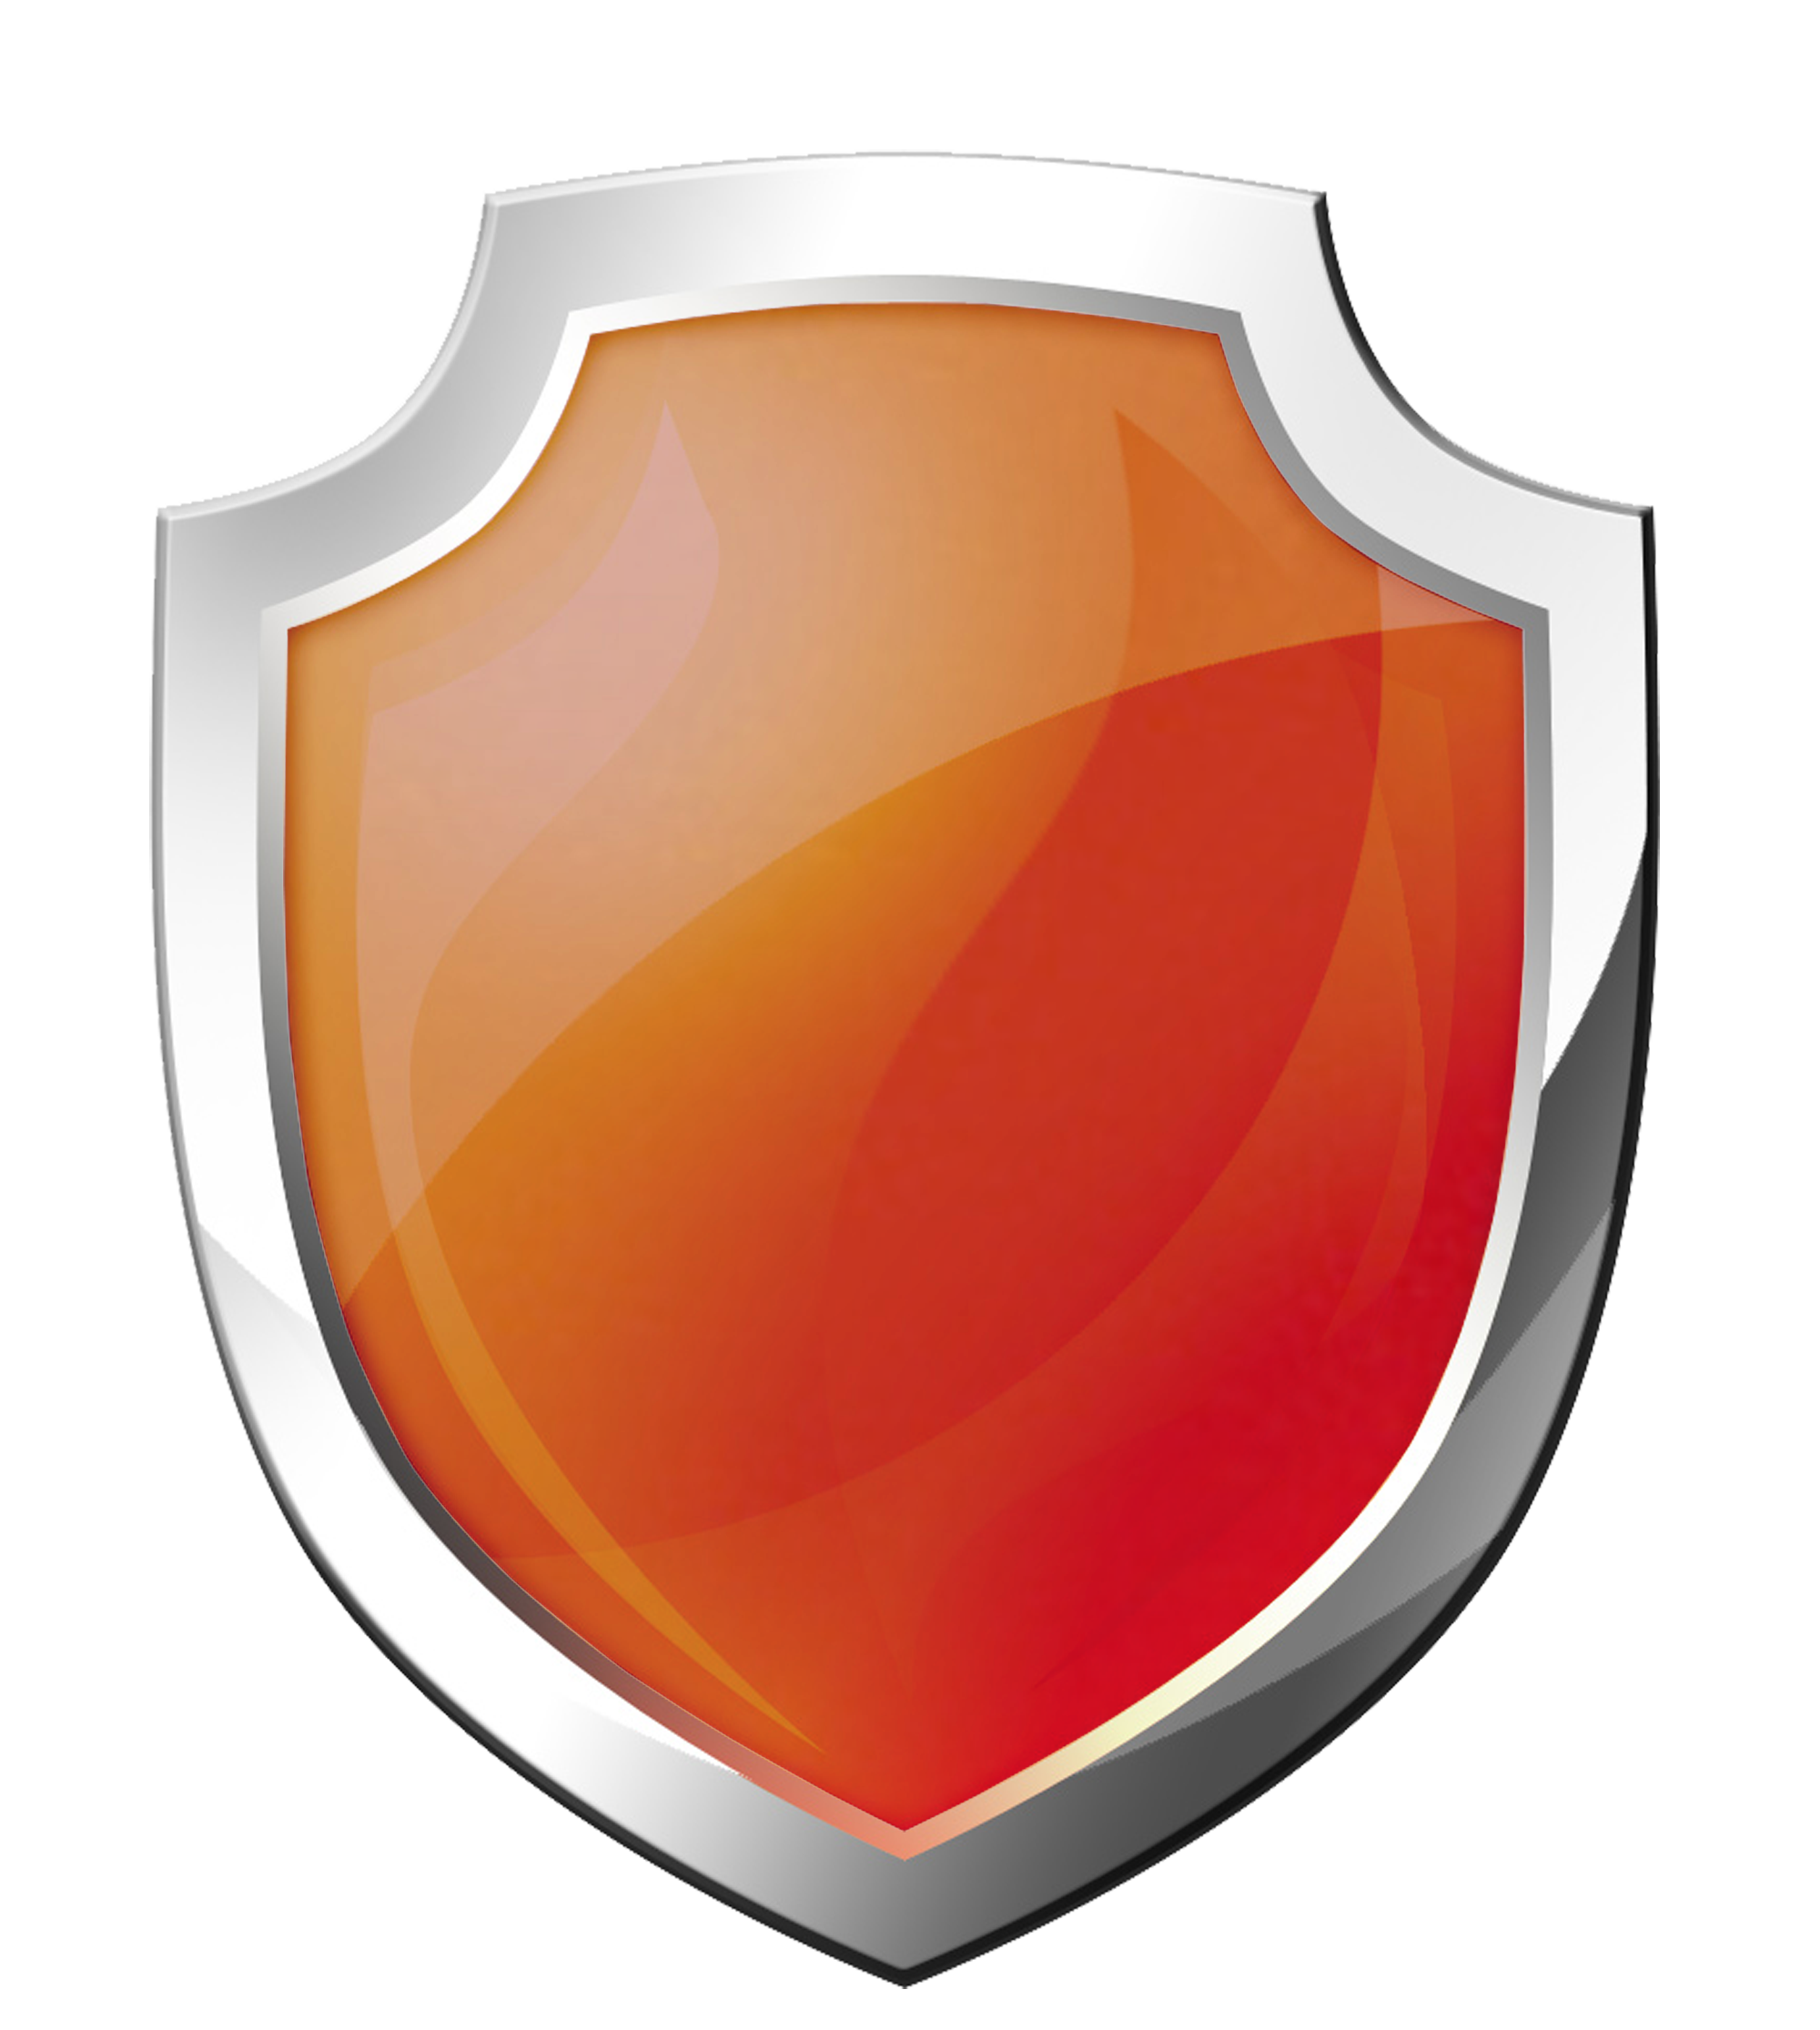 Download Shield PNG Image for Free